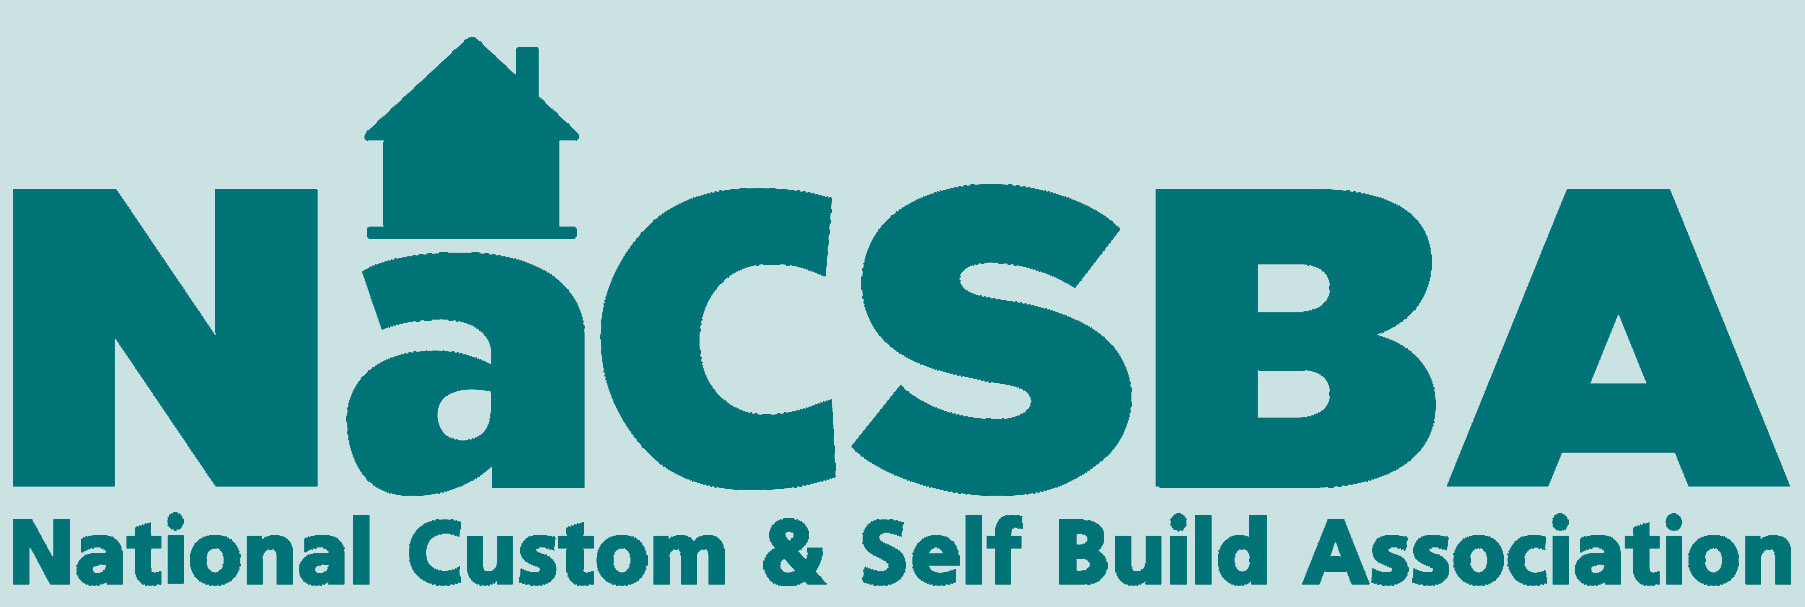 National Self Build Association